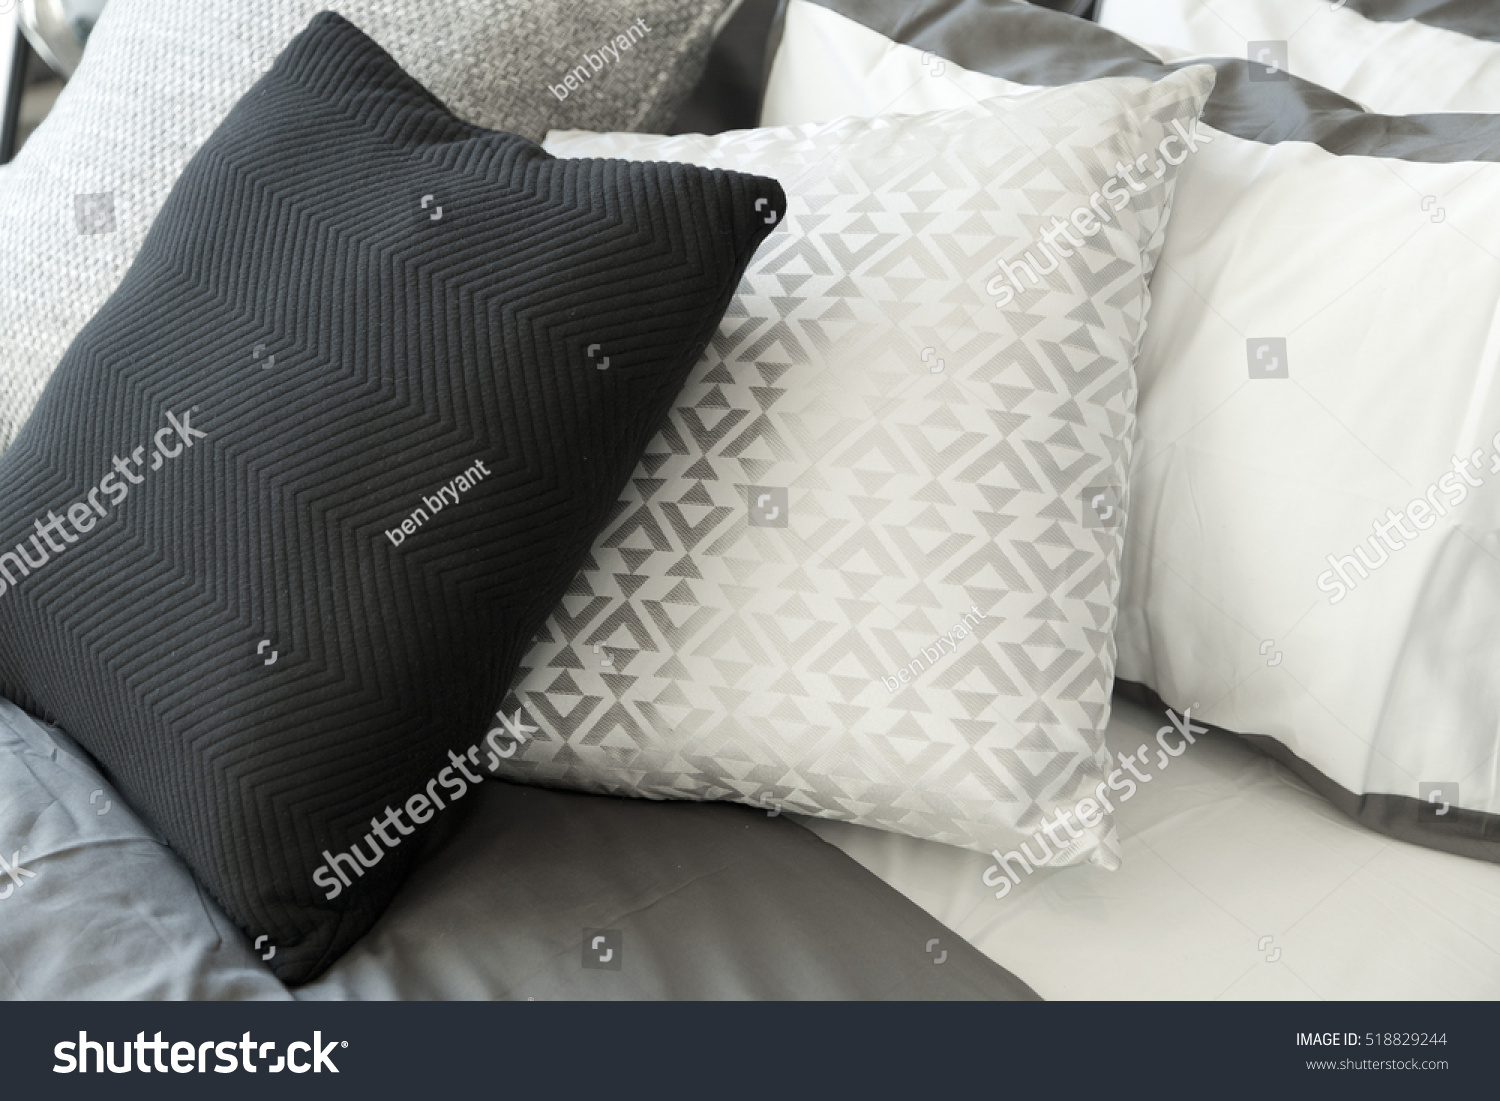 Black Throw Pillows For Bed : black pillows for bed black and white pillows on bed stock photo 518829244